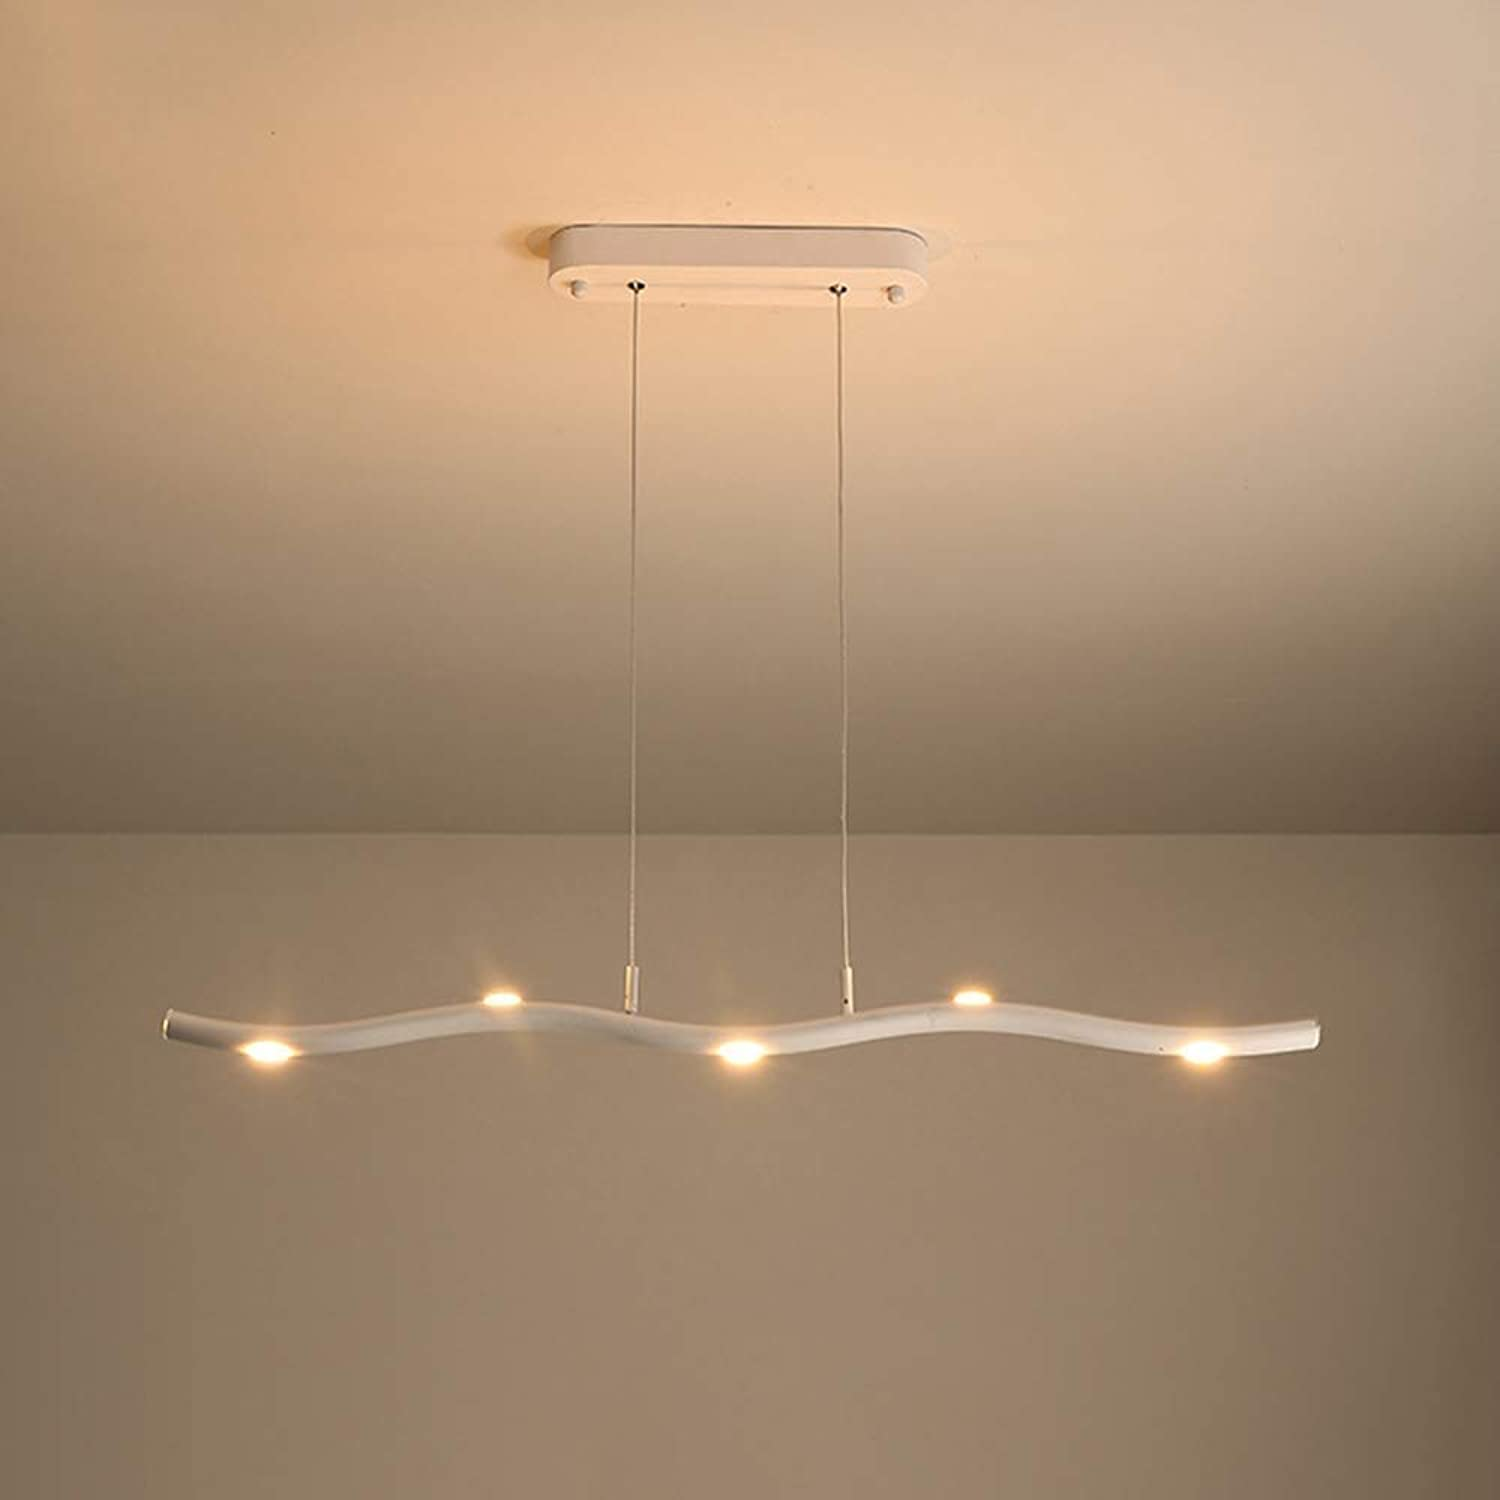 Perfect Home LED Chandelier Ceiling Light Not Dimmable Flush Fit, Modern Wave Large Kitchen Hallway Lamp Fixture, Nordic Minimalist White Acrylic for Living Room,3000K Durable